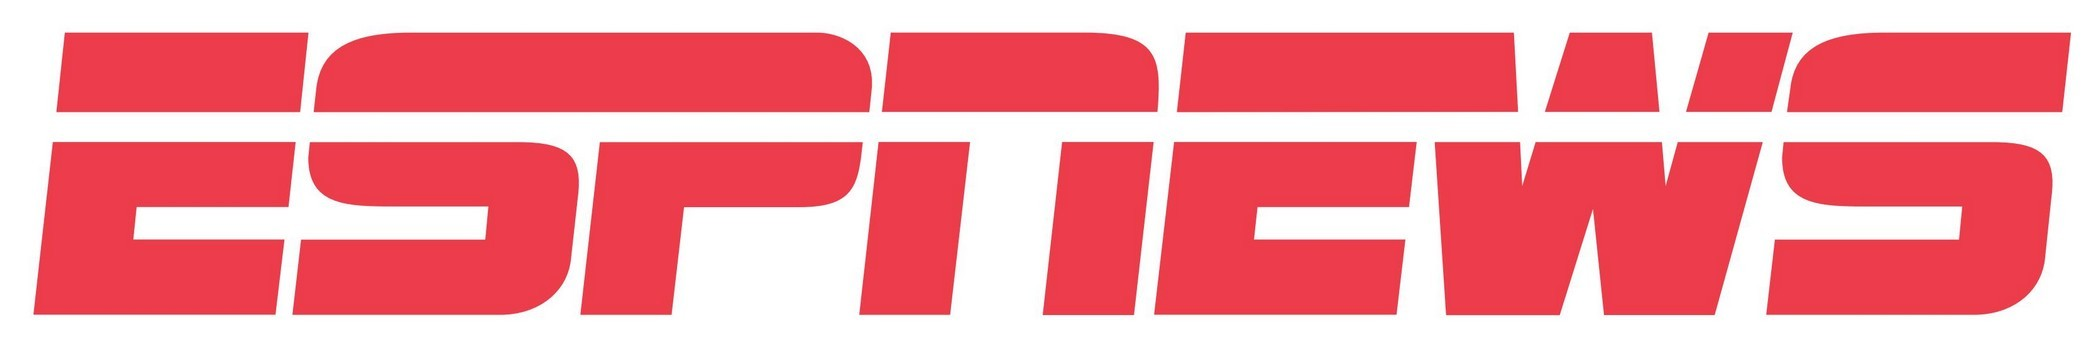 ESPNEWS logo